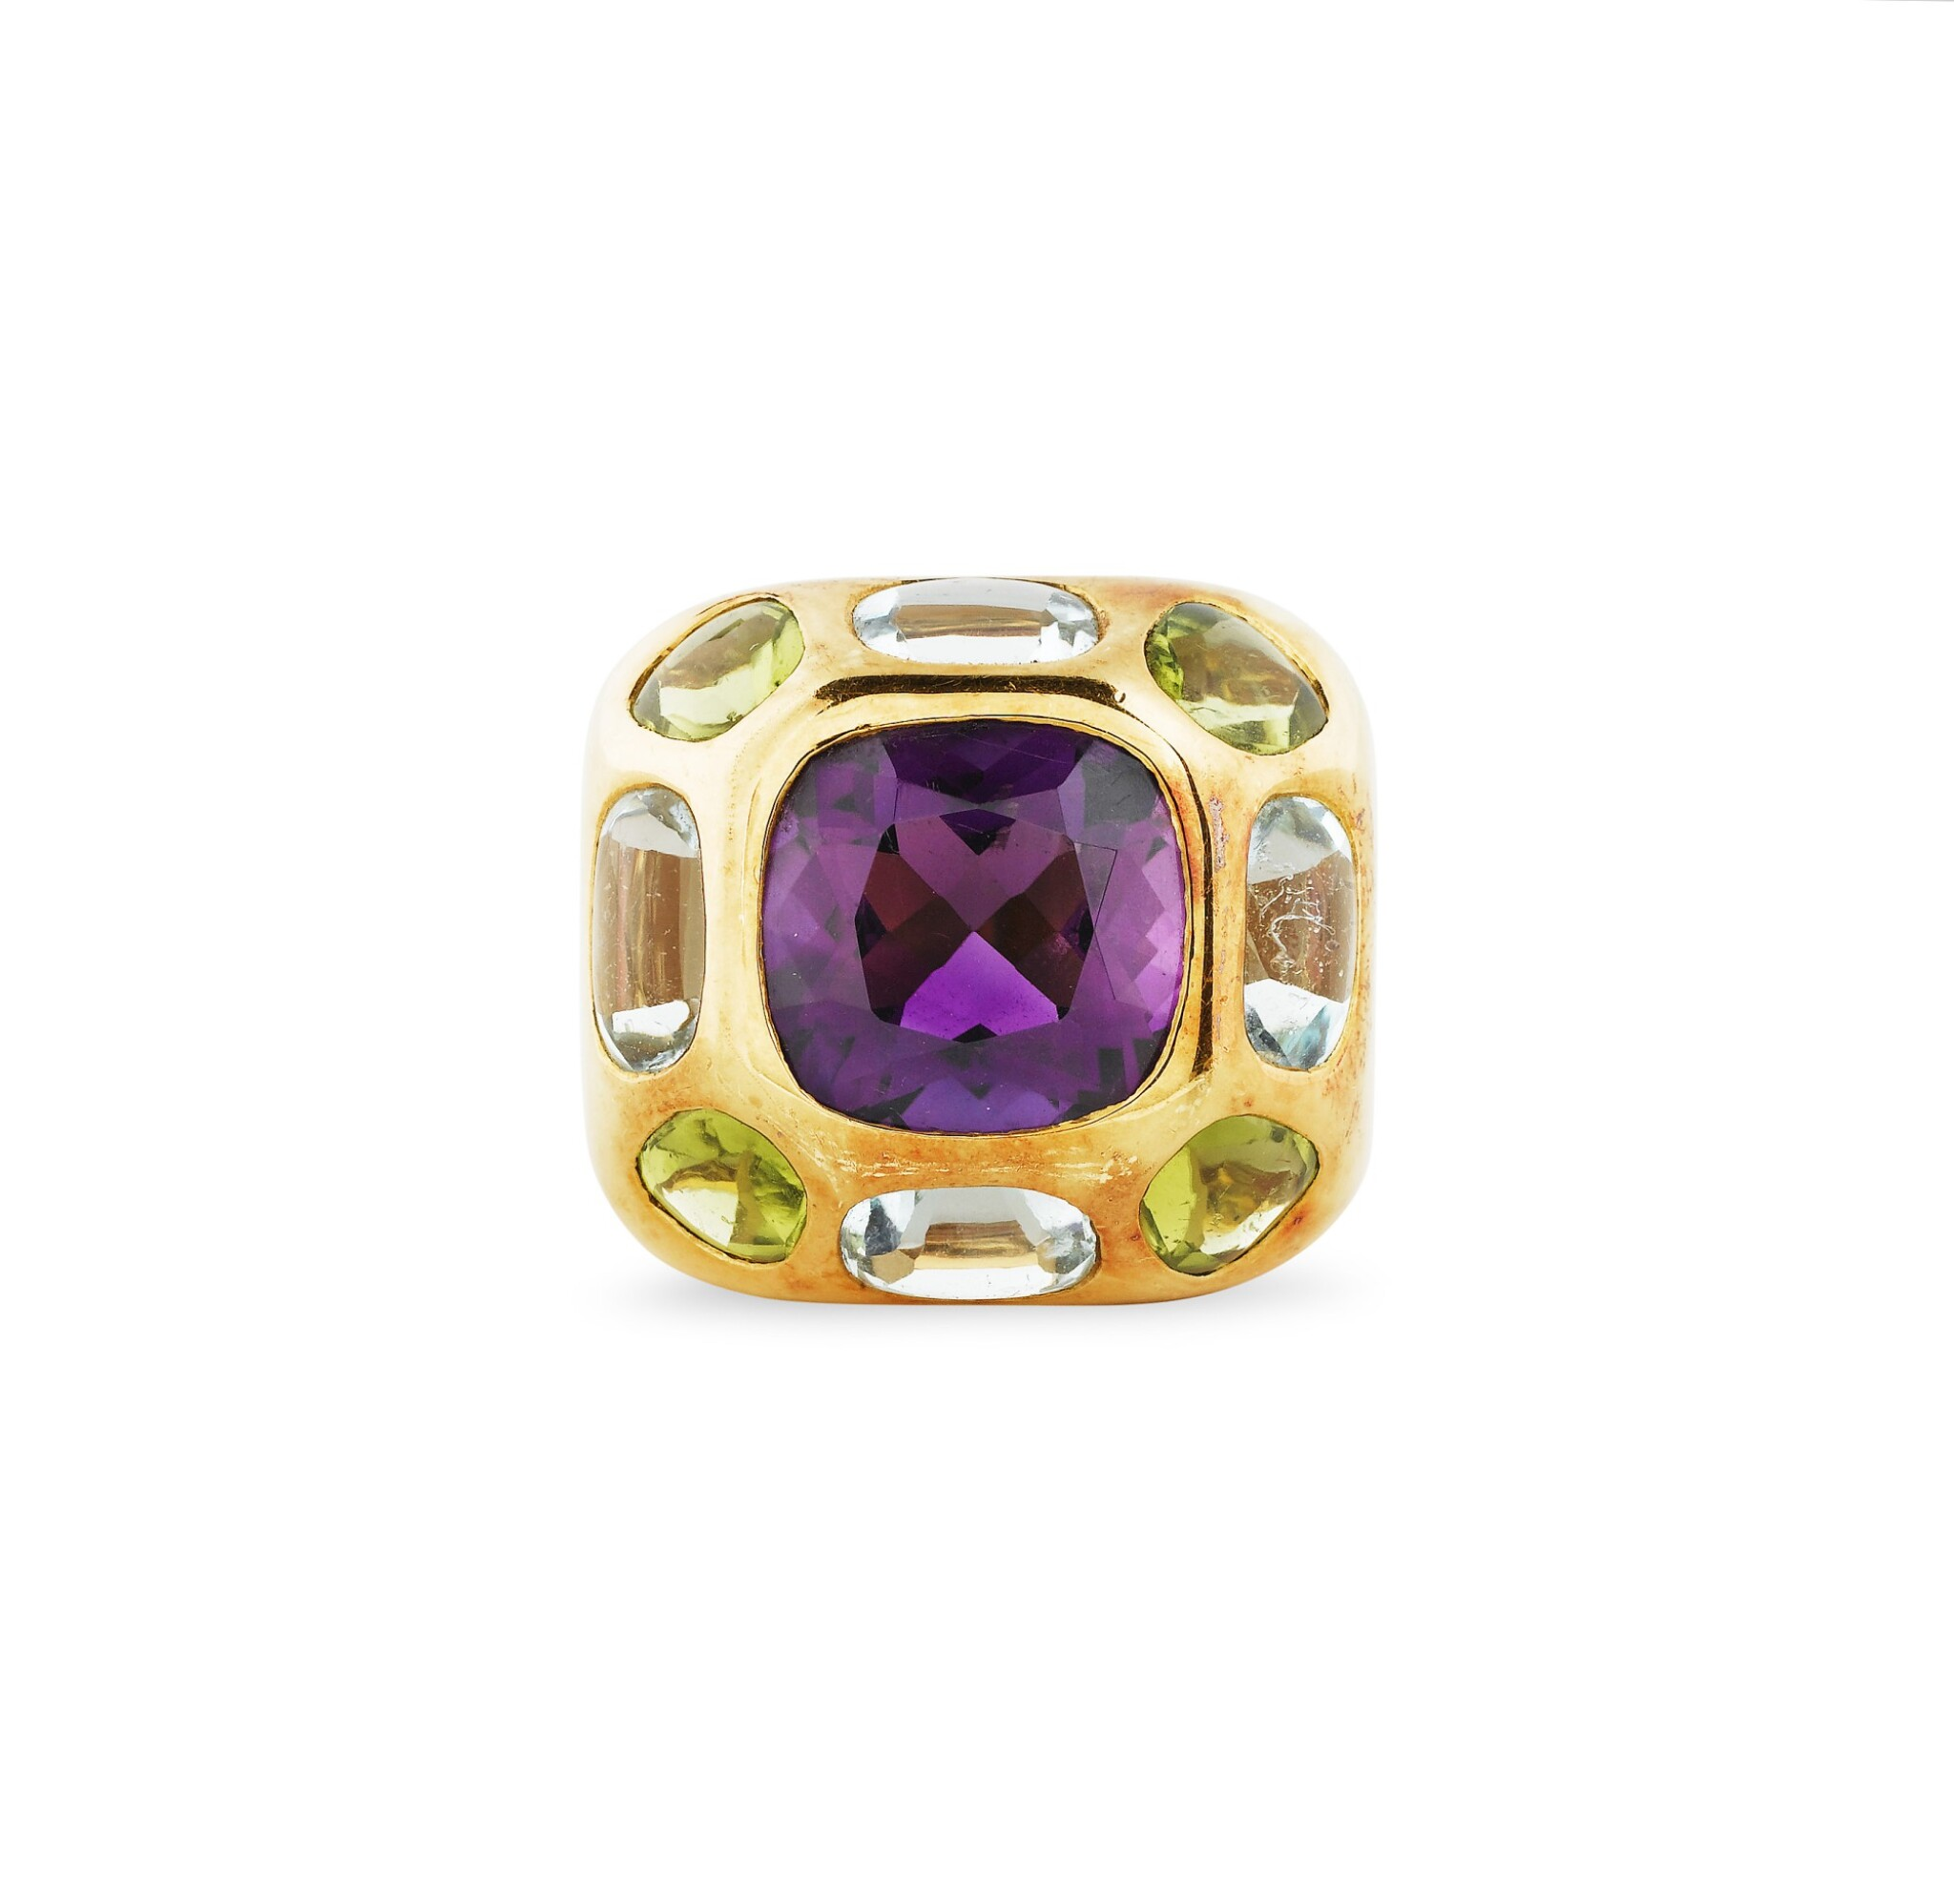 """View full screen - View 1 of Lot 82. BAGUE AMETHYSTE, AIGUES-MARINES ET PERIDOTS, """"COCO"""" 